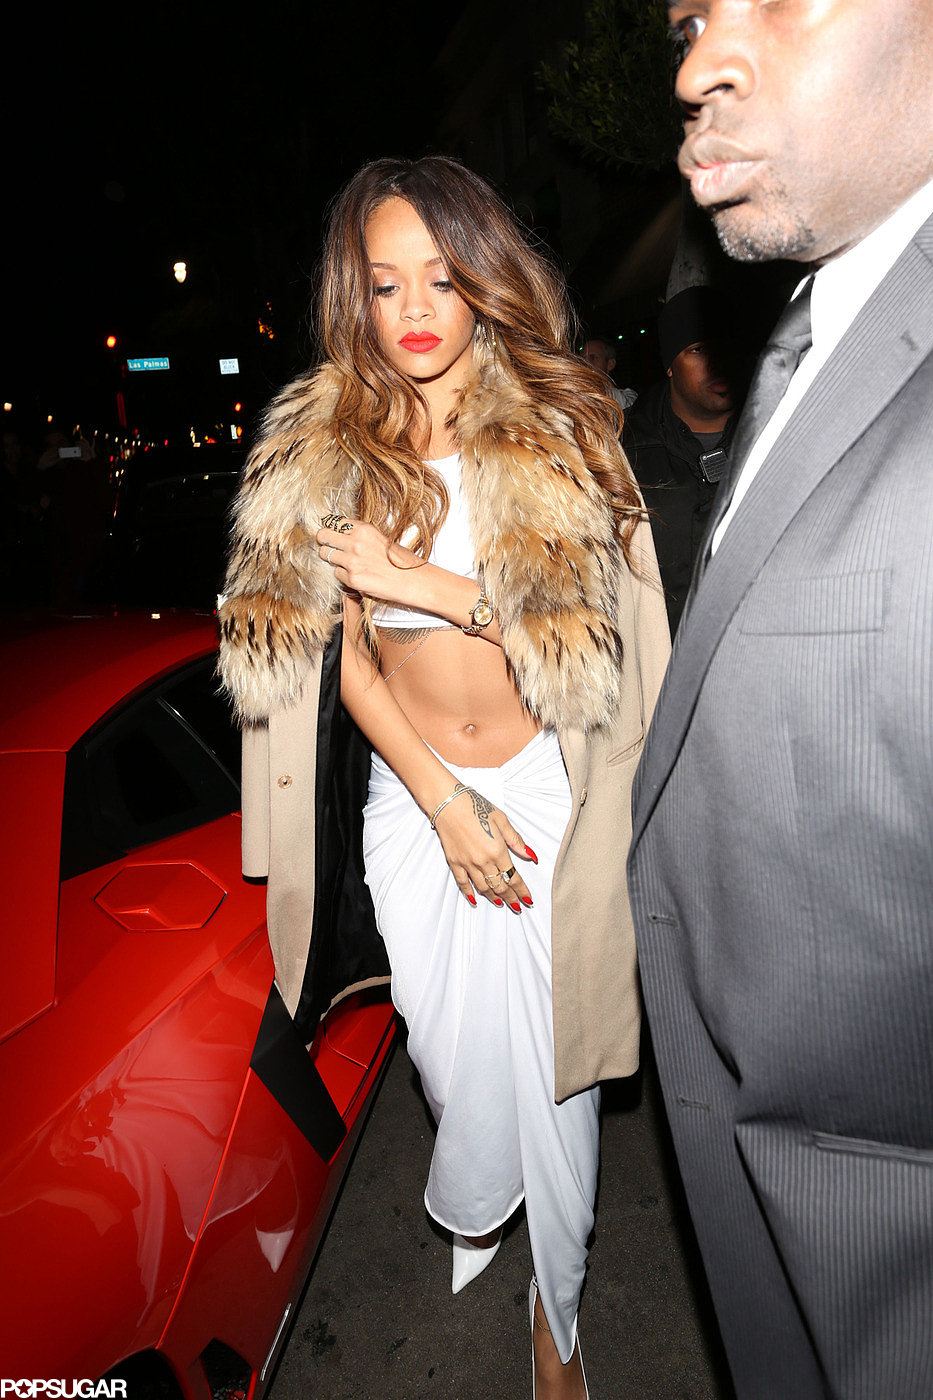 Rihanna arrived with Chris Brown.